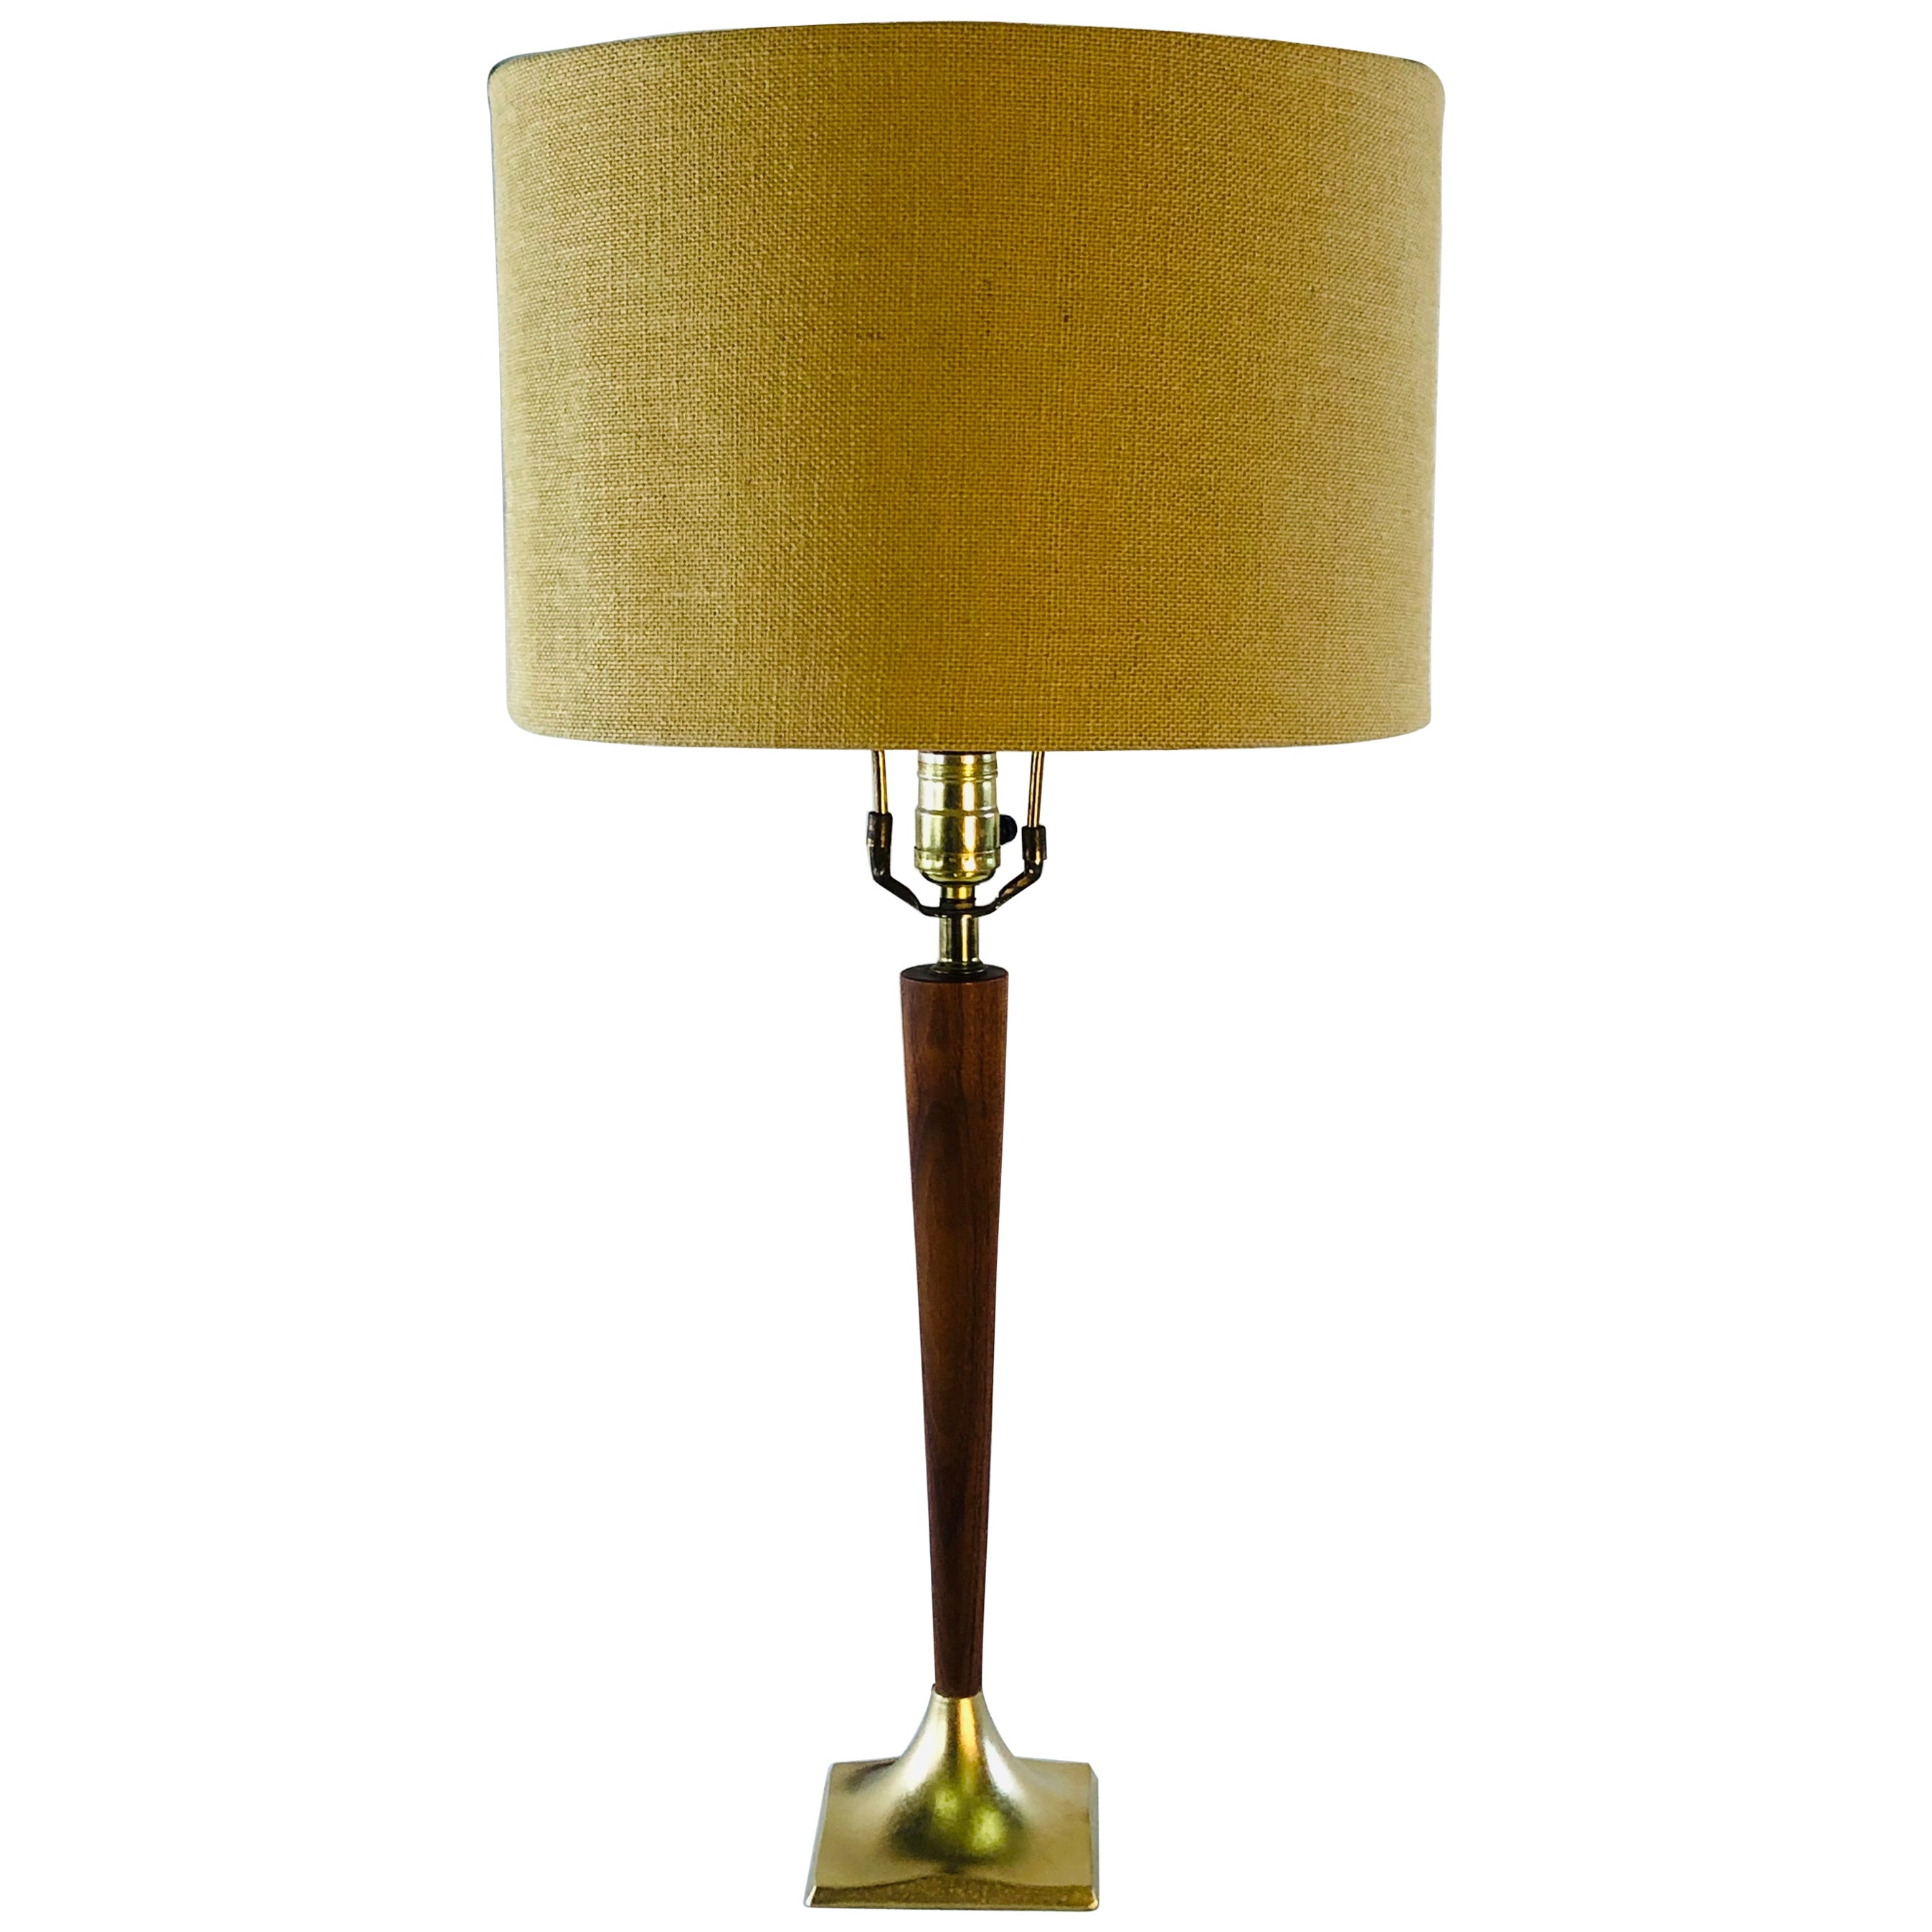 1960s Walnut Laurel Lamp Co Table Lamp